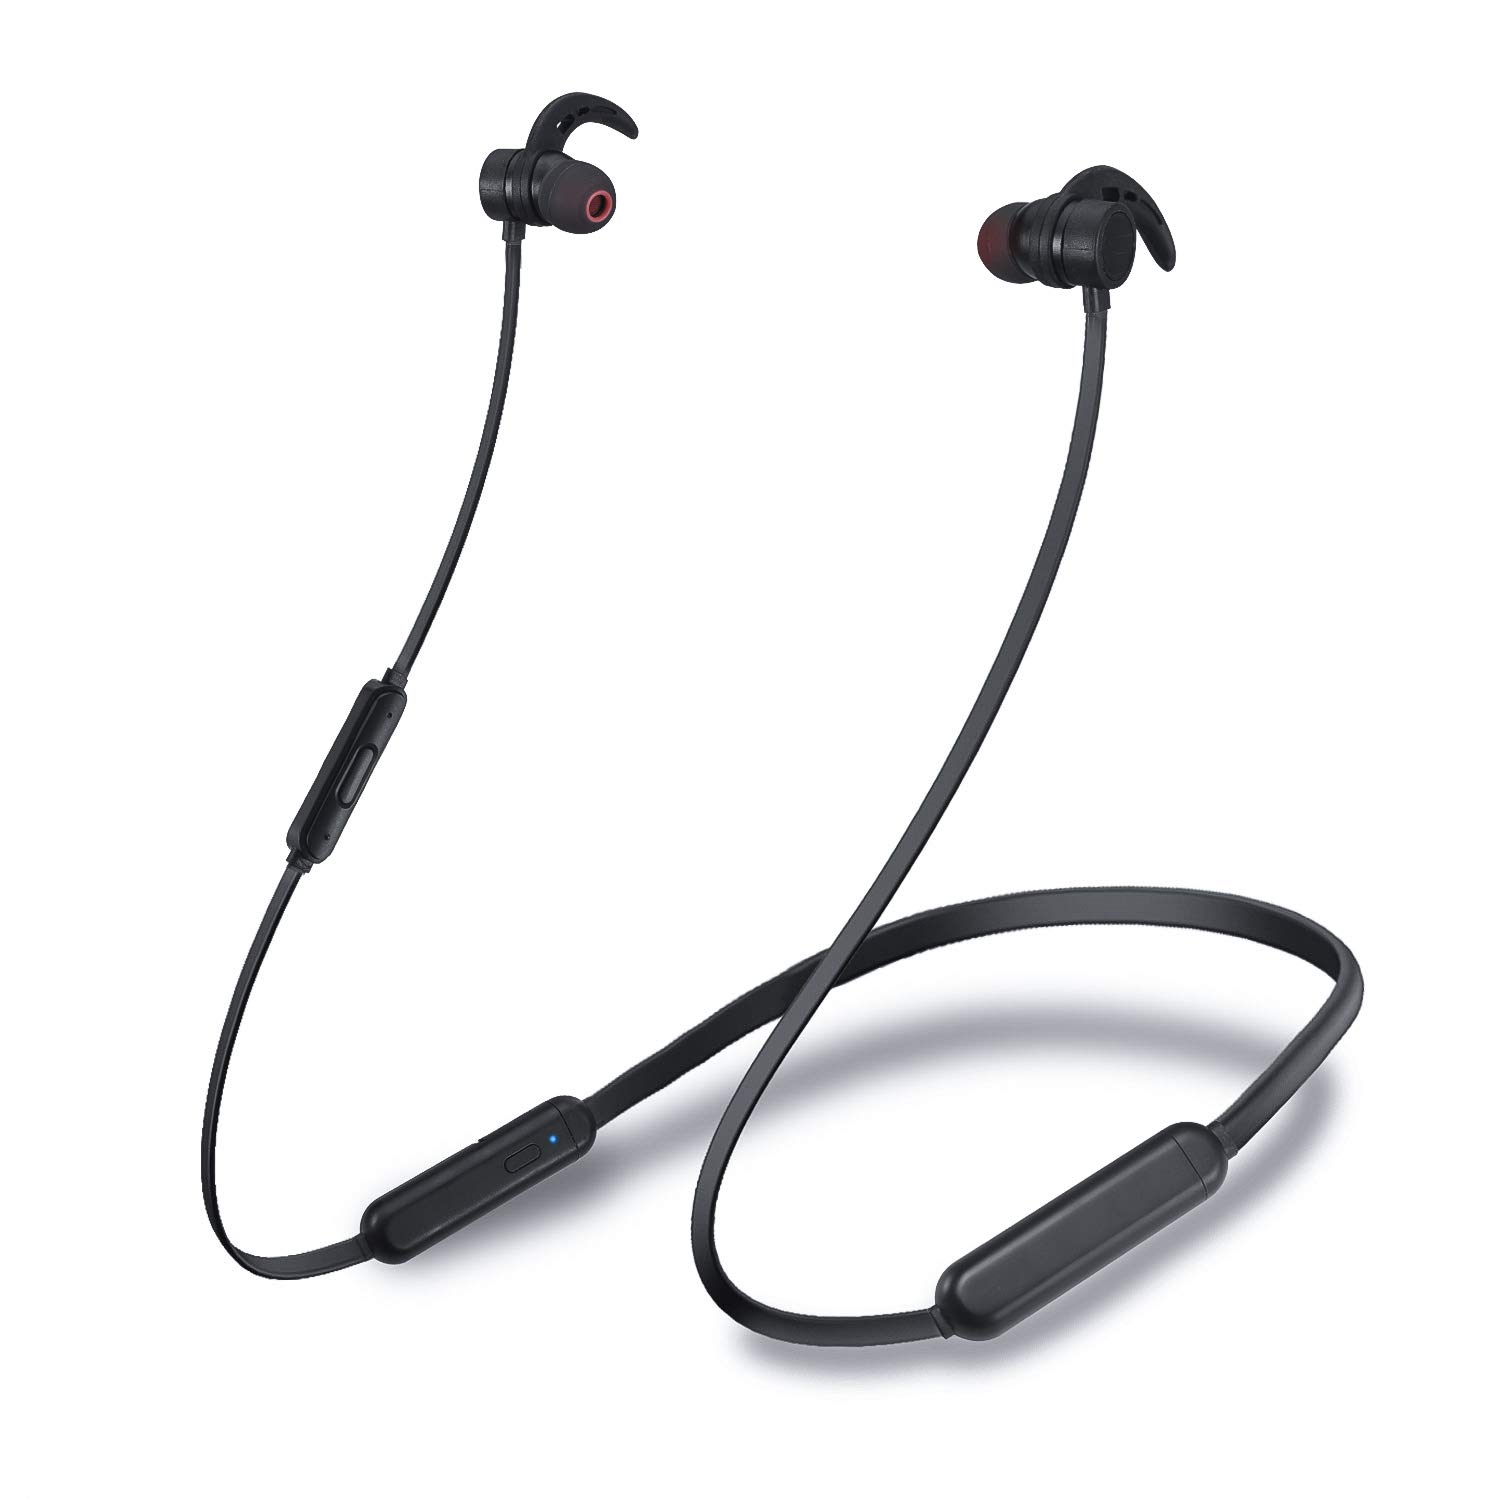 Auriculares Bluetooth Headset Sports Inalambrico Headset Bluetooth 5.0 A Prueba de Agua Correr Headset con Microfono HD